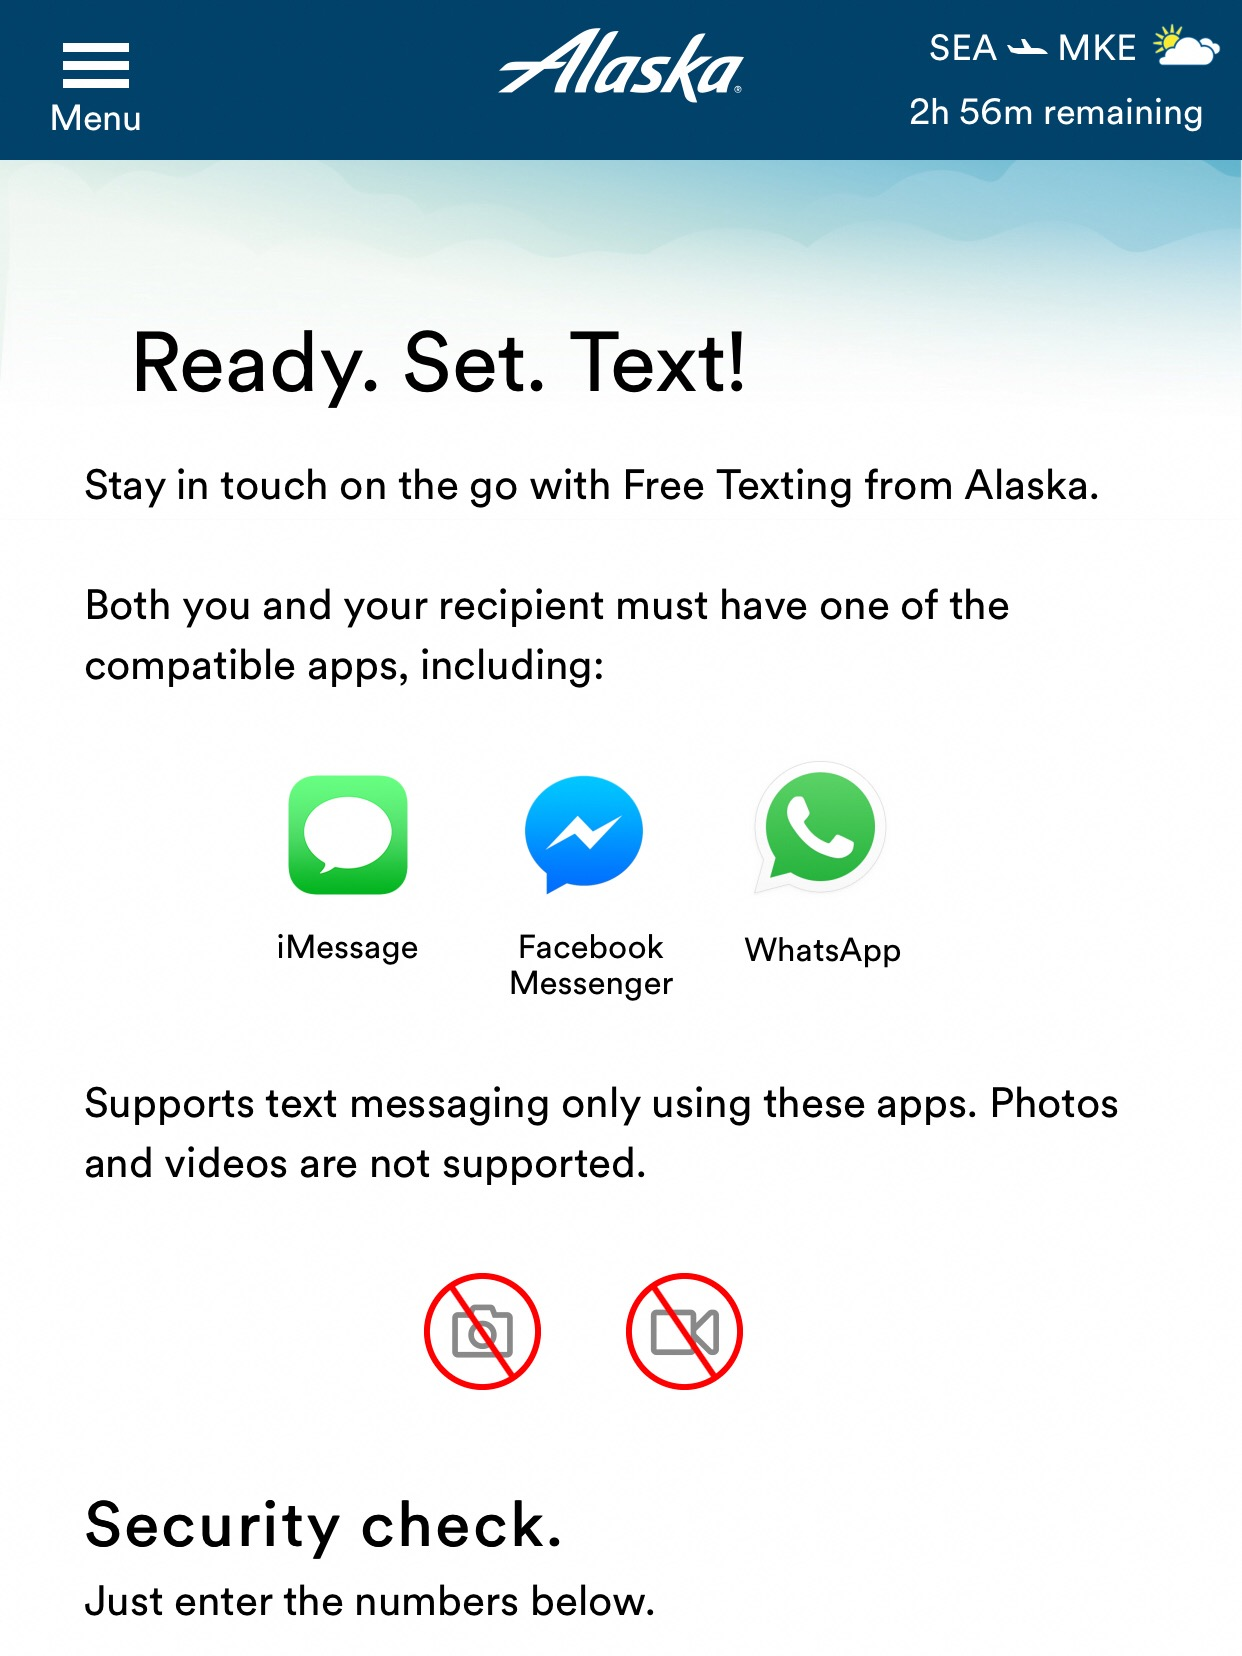 Alaska has joined Delta and Southwest in offering free texting while inflight.